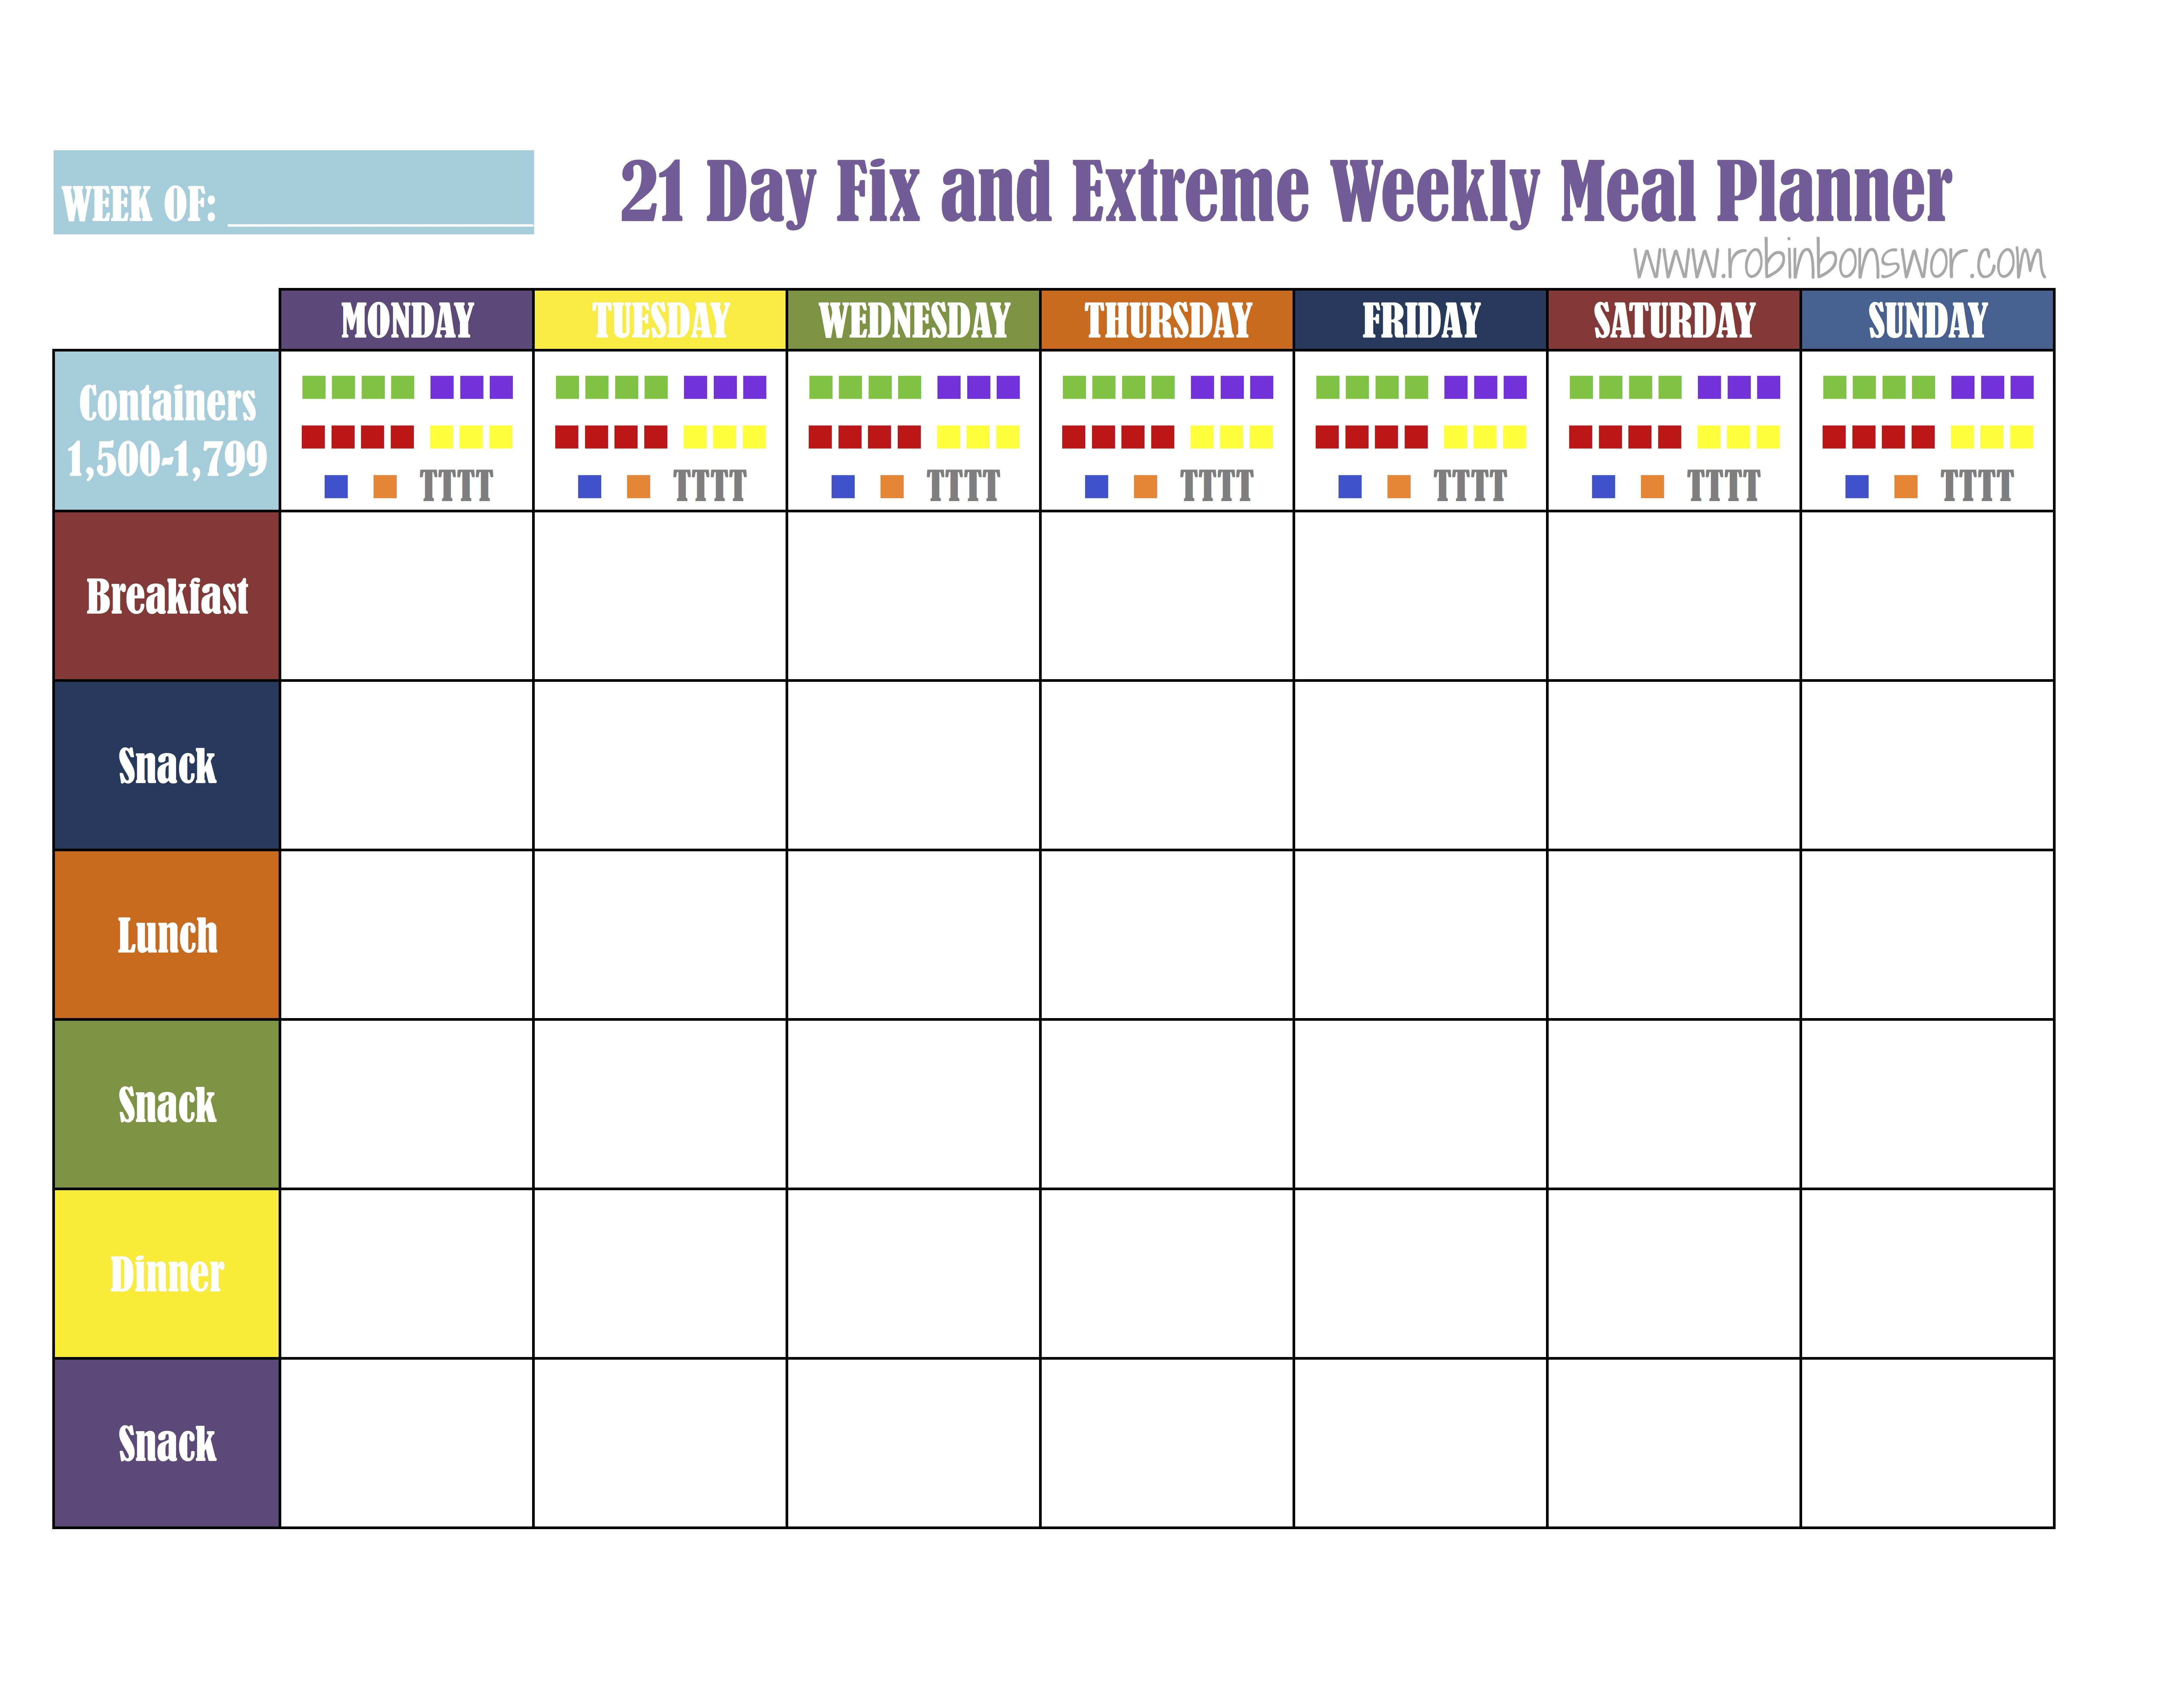 Meal Plan Sheets Fix1500 21 day fix meal plan, 21 day